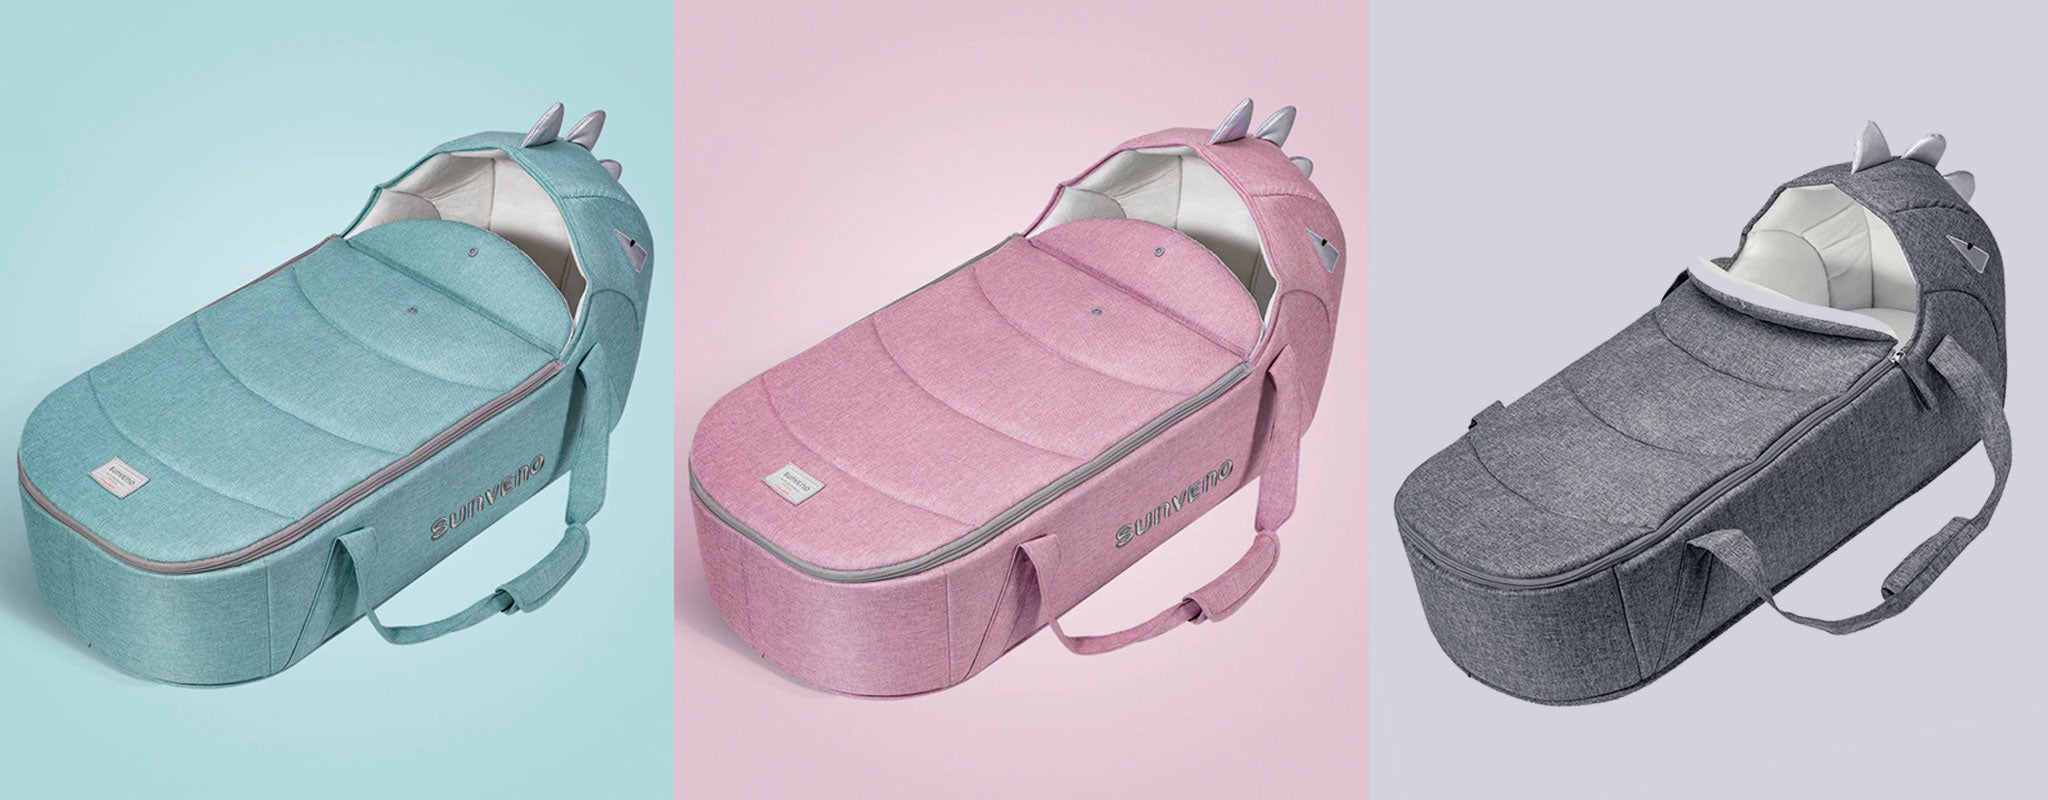 Sunveno-Portable-Baby-Bed-for-Travel